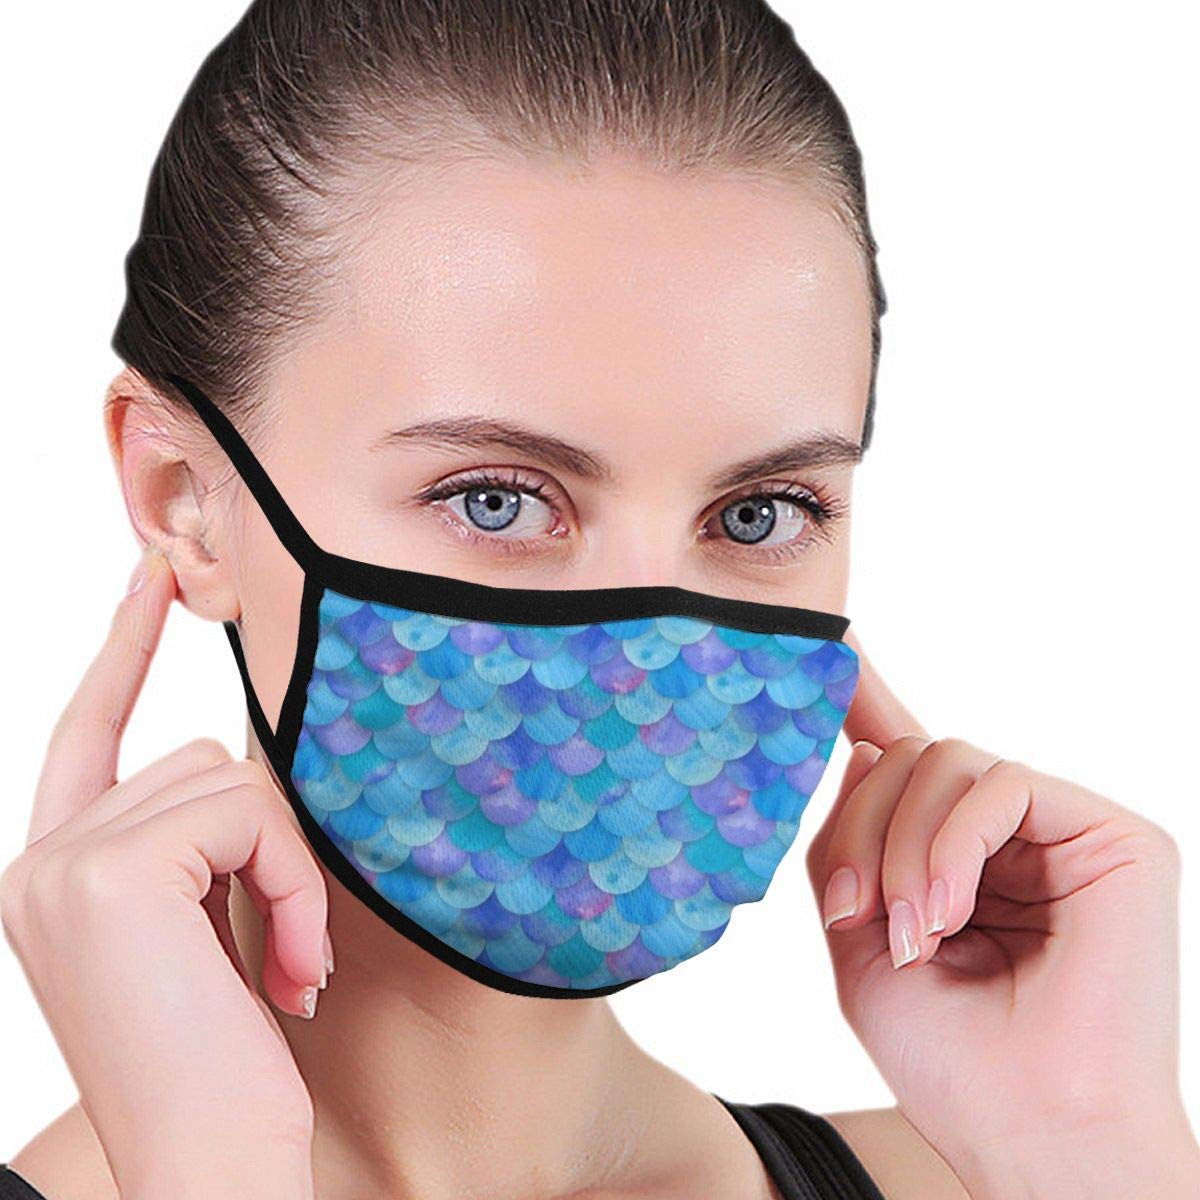 Bdwuhs Mascarillas Bucales Blue Mermaid Scale Washable Reusable Mouth Mask Cotton Anti Dust Half Face Mouth Mask For Men Women Dustproof with Adjustable Ear Loops